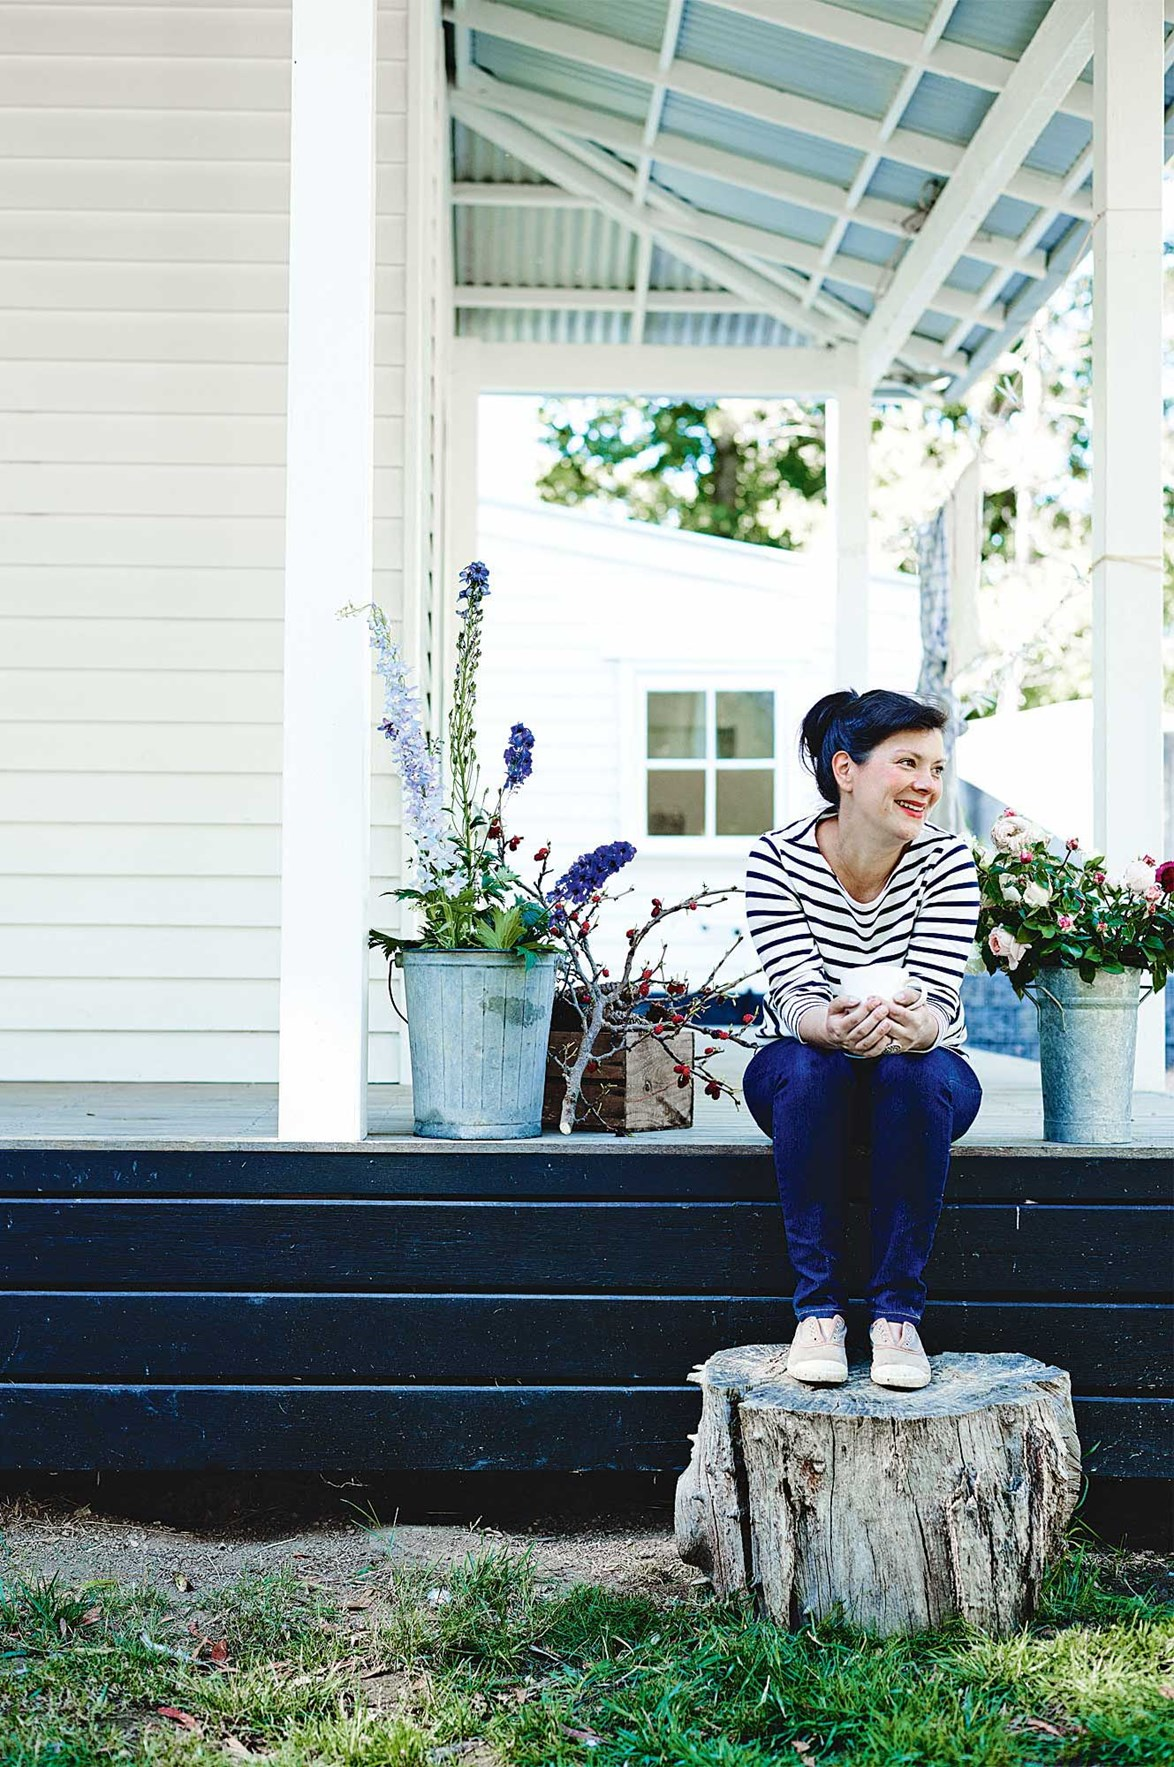 "Natasha and her family moved out of their urban Melbourne [home to Spargo Creek](https://www.homestolove.com.au/restored-farmhouse-becomes-a-meeting-place-for-creatives-13750|target=""_blank""), after she realised her passion for growing fresh produce, gardening, and floristry. Their home now hosts workshops for likeminded creatives, which focus on topics ranging from garden design (Natasha is a landscape designer and architect who lectures for RMIT and Melbourne University), to small business marketing and stone masonry. *Photo: Mark Roper*"